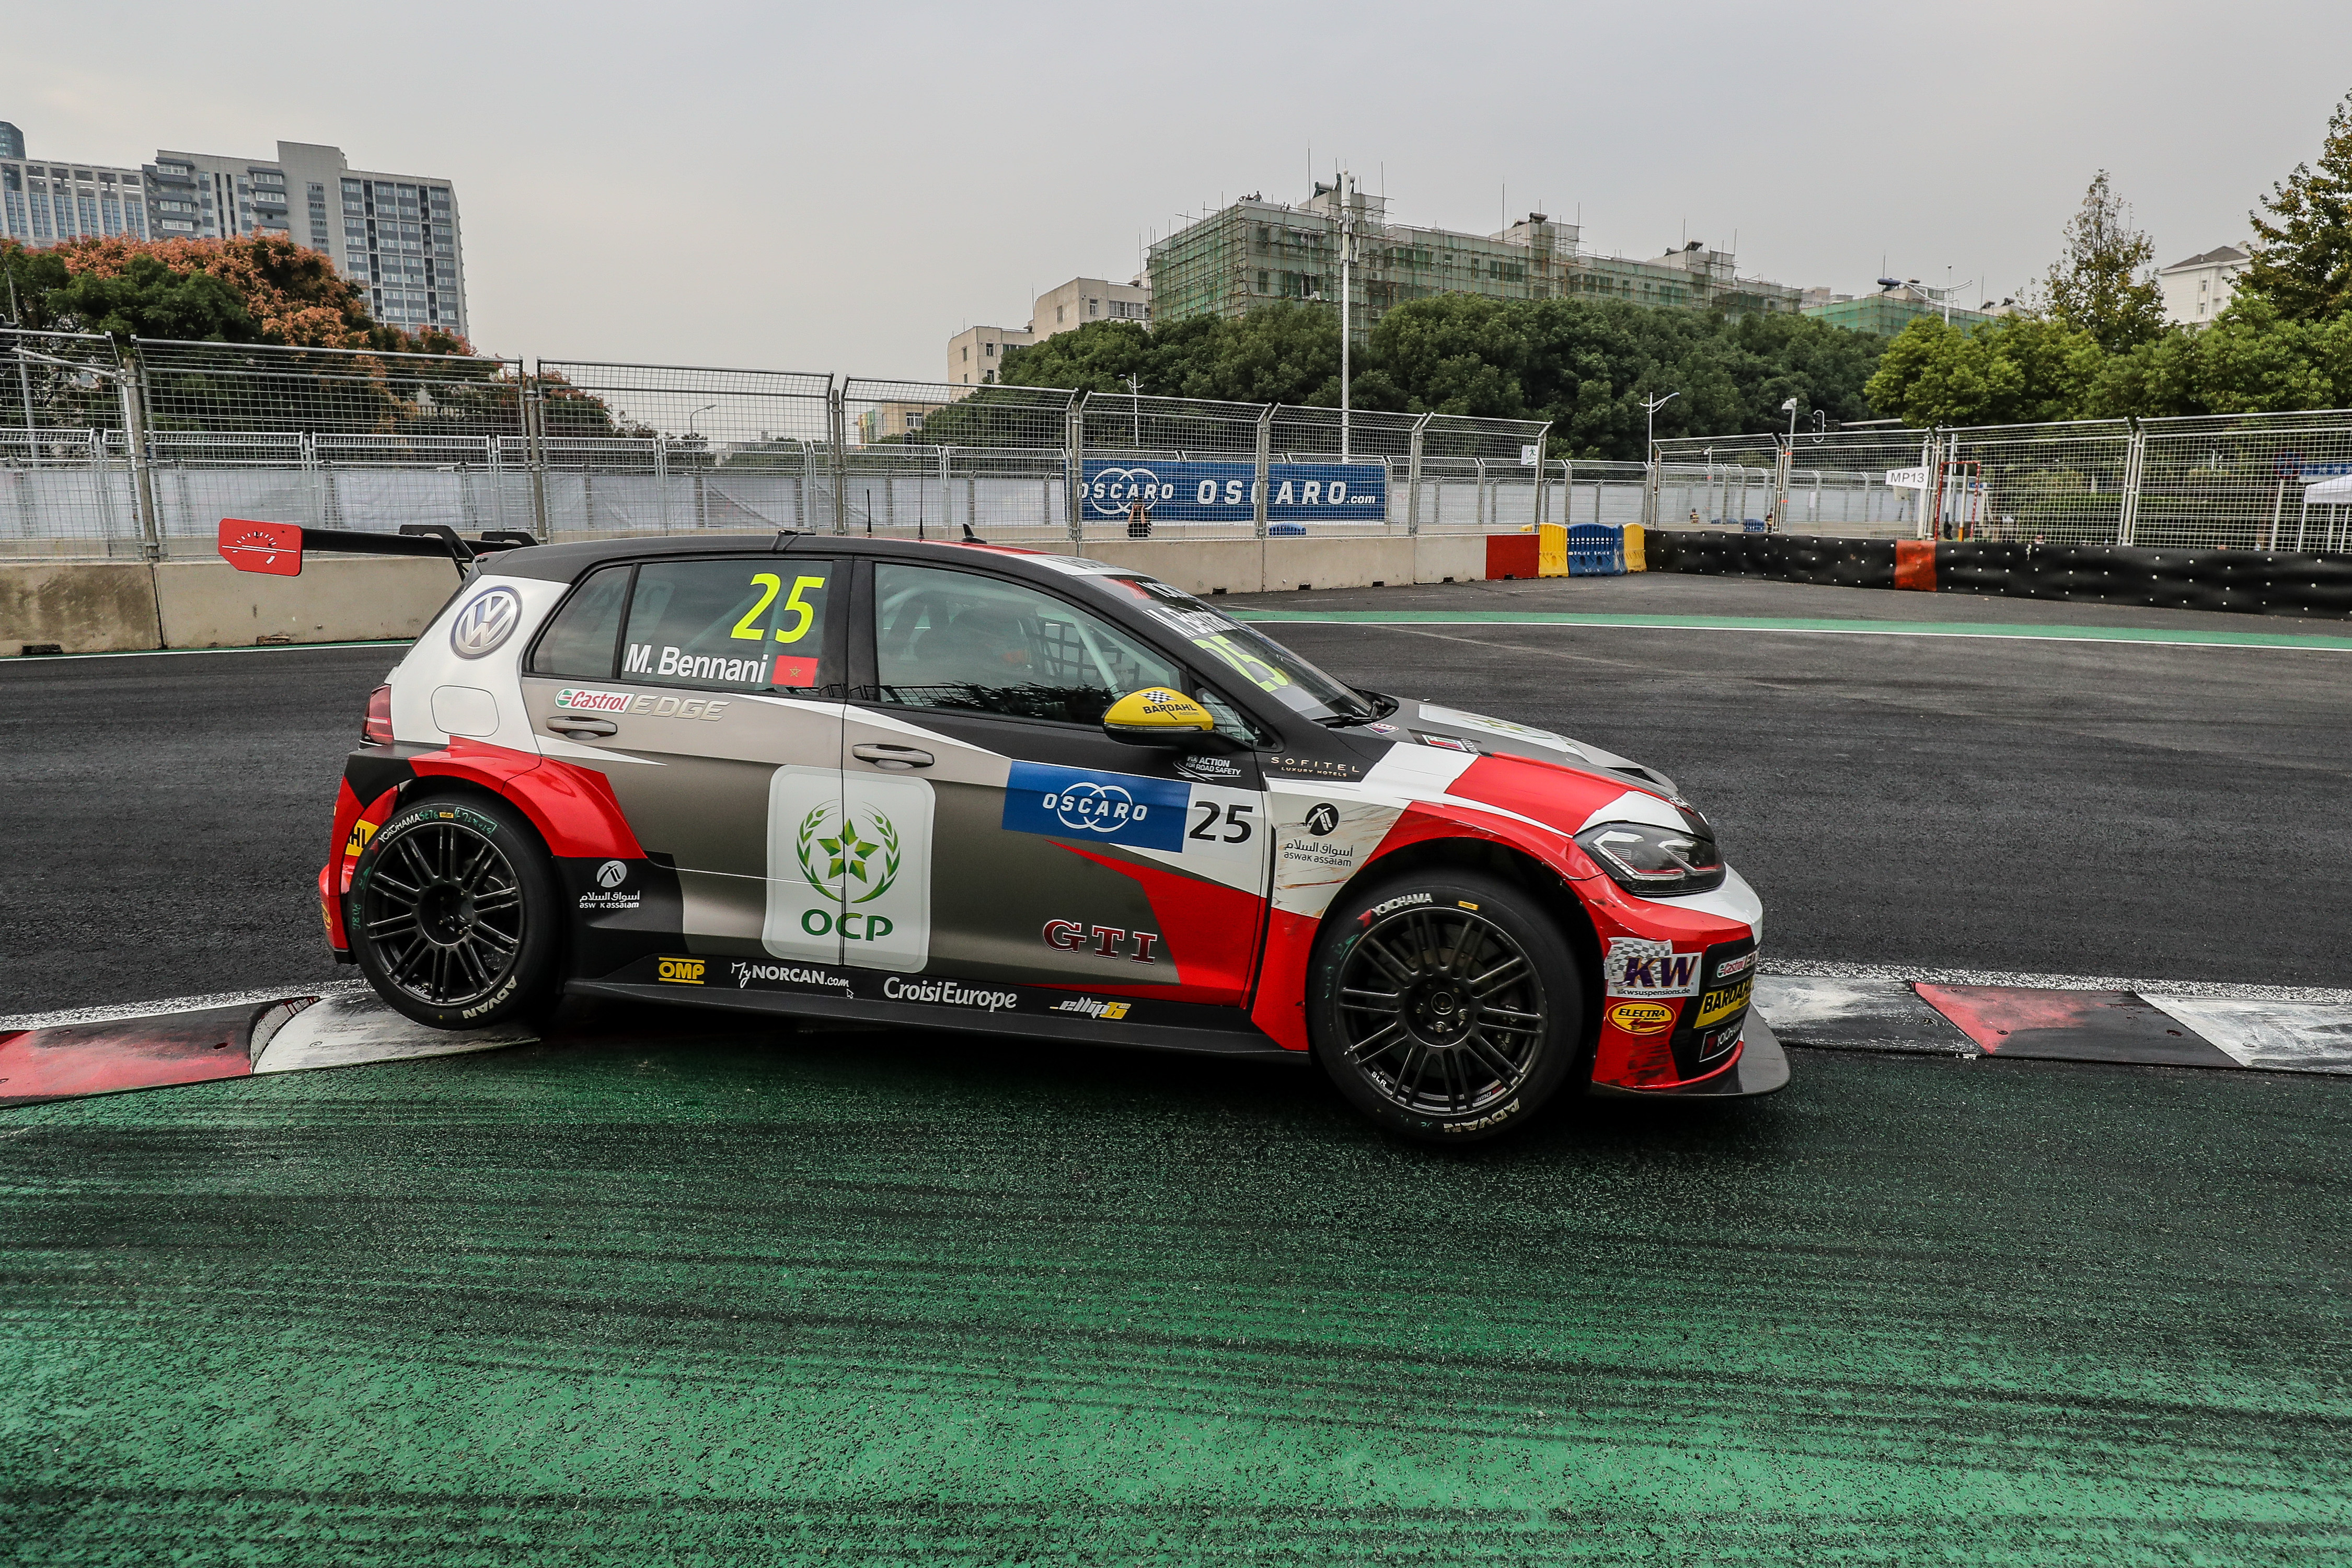 Exclusive club member Bennani bids for more WTCR points